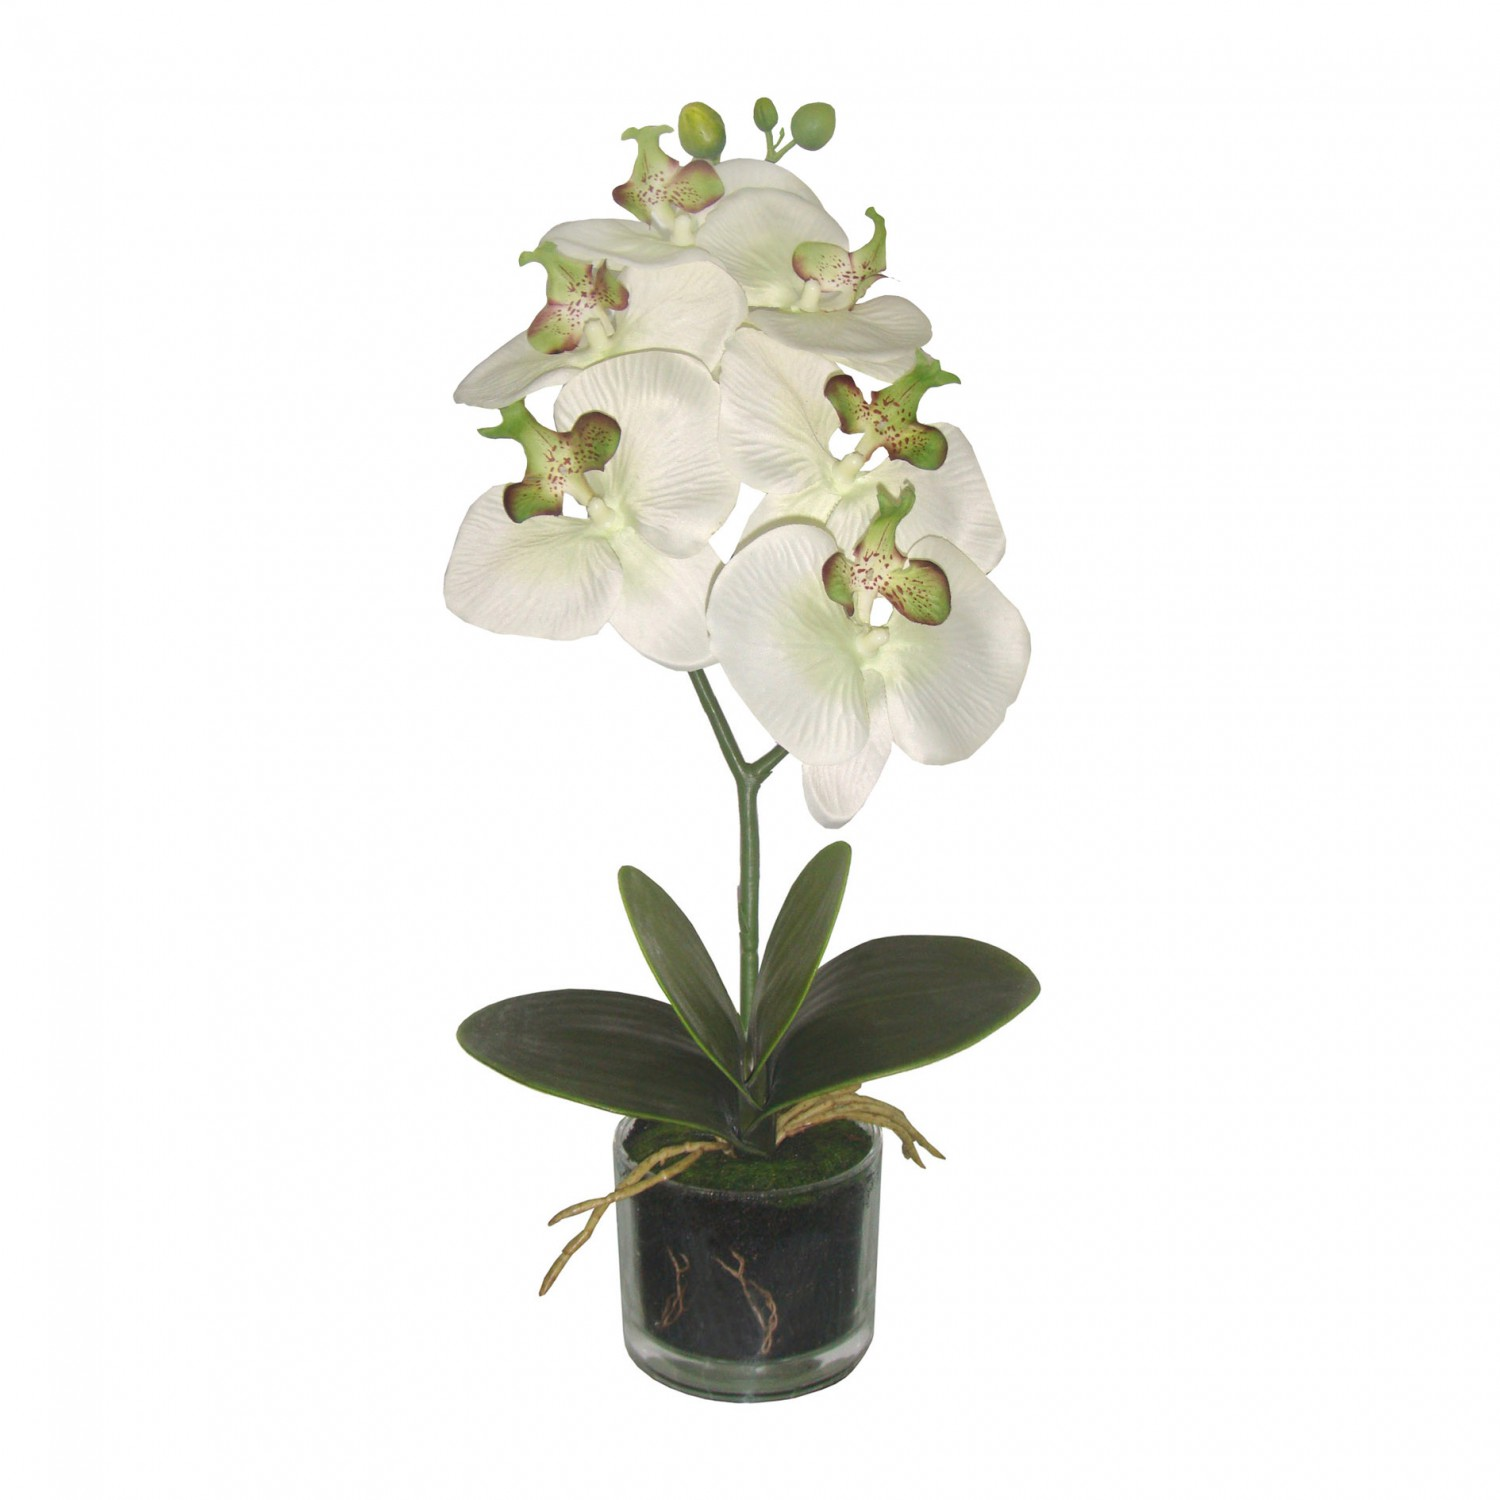 orchidee phalaenopsis kunstpflanze 40 cm in creme gr n im glas kunstpflanzen bl hende pflanzen. Black Bedroom Furniture Sets. Home Design Ideas